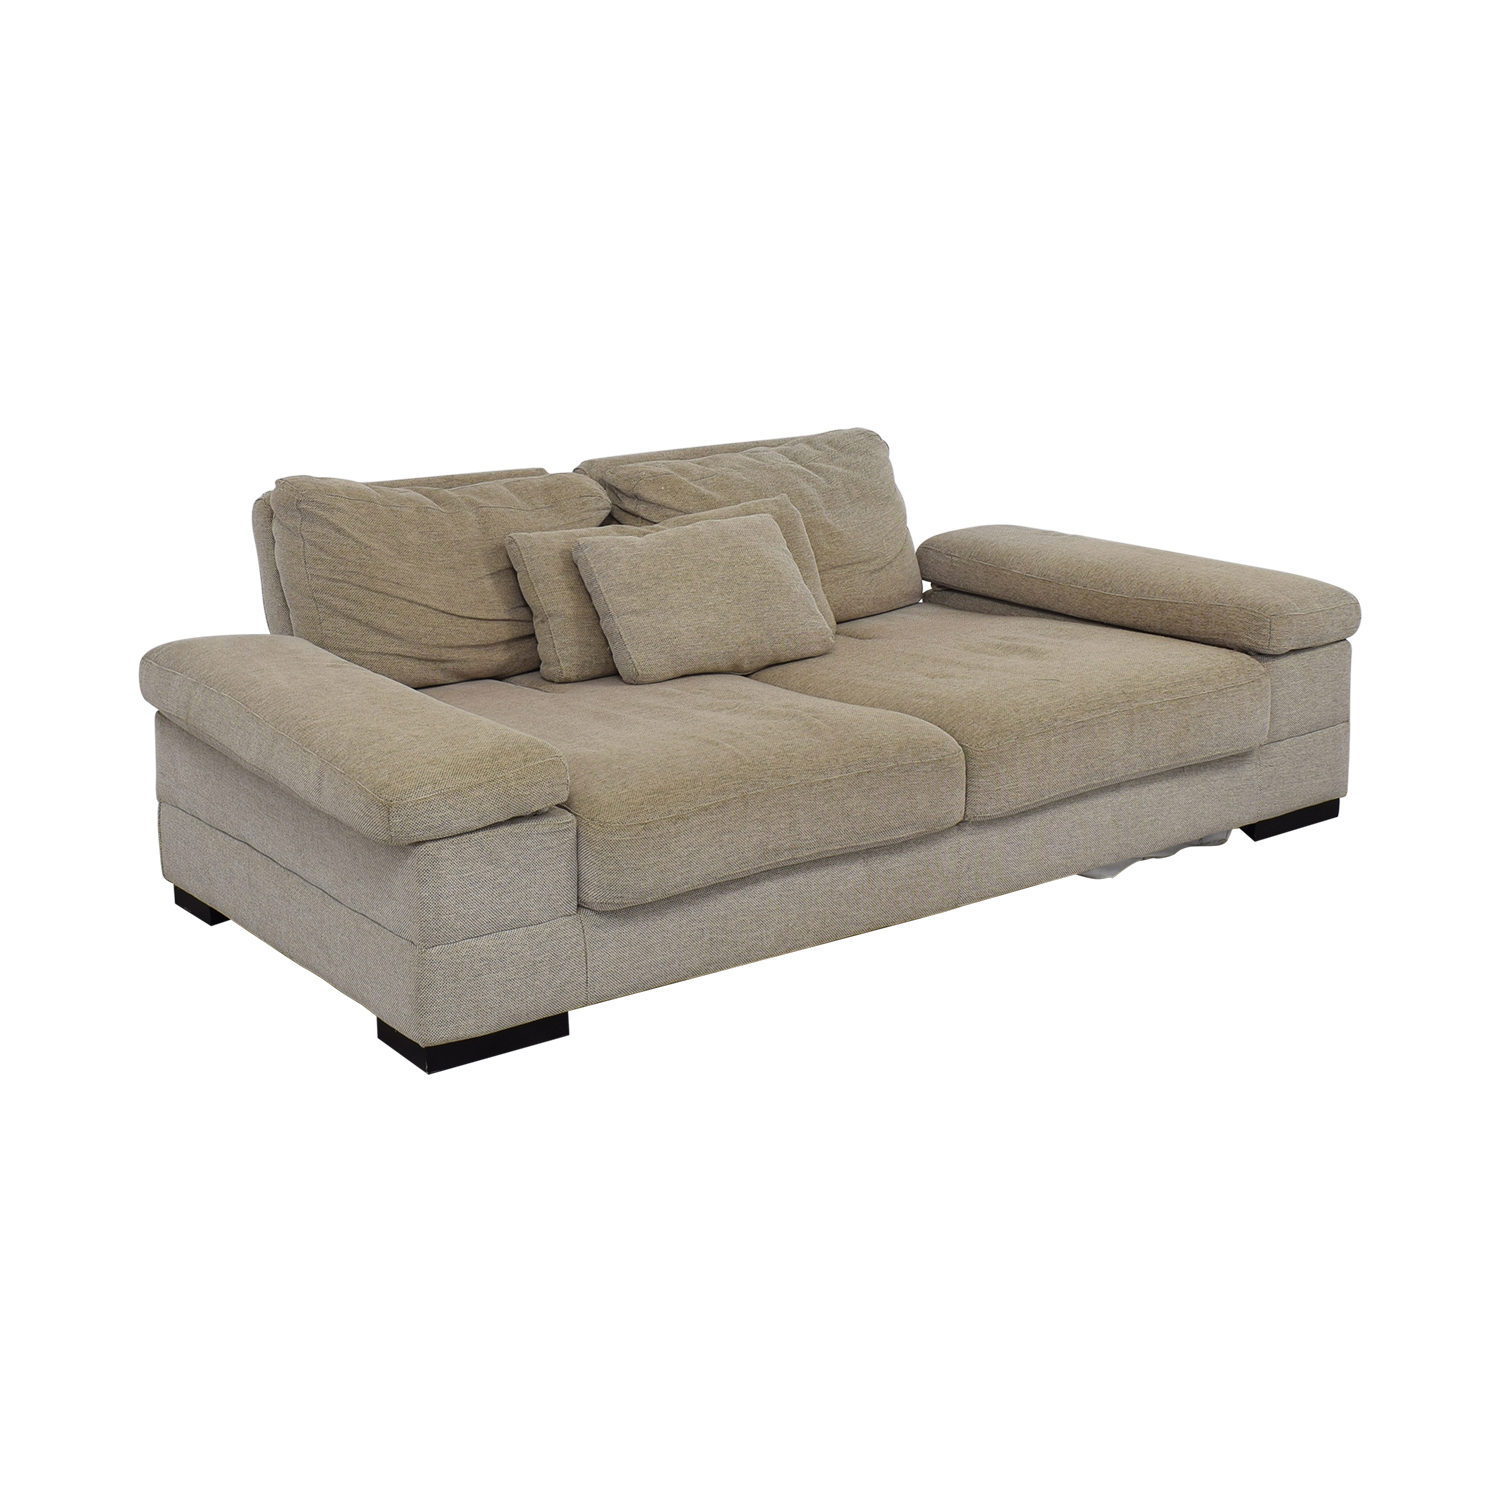 buy Lazzoni Lazzoni Kema Sectional Sofa Bed online